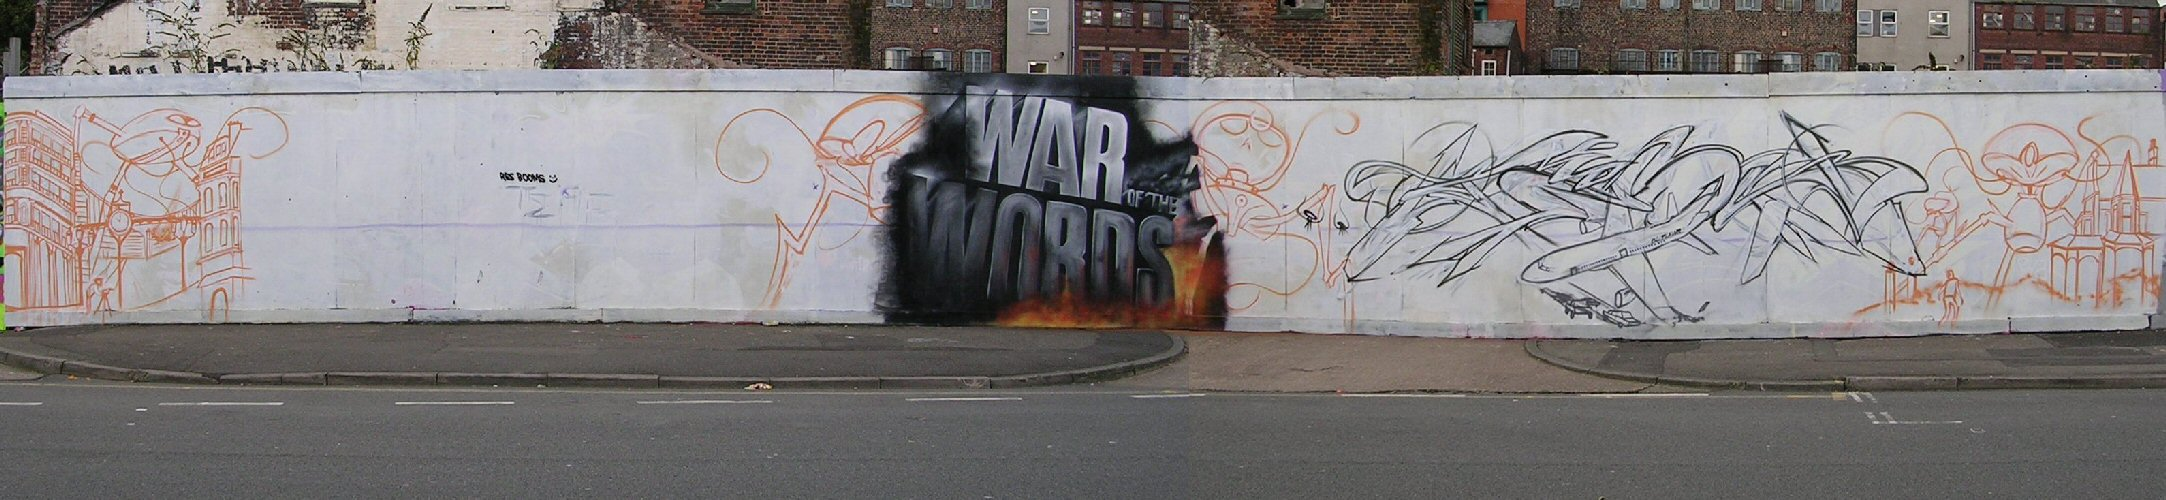 War of Words panorama 26/10/12